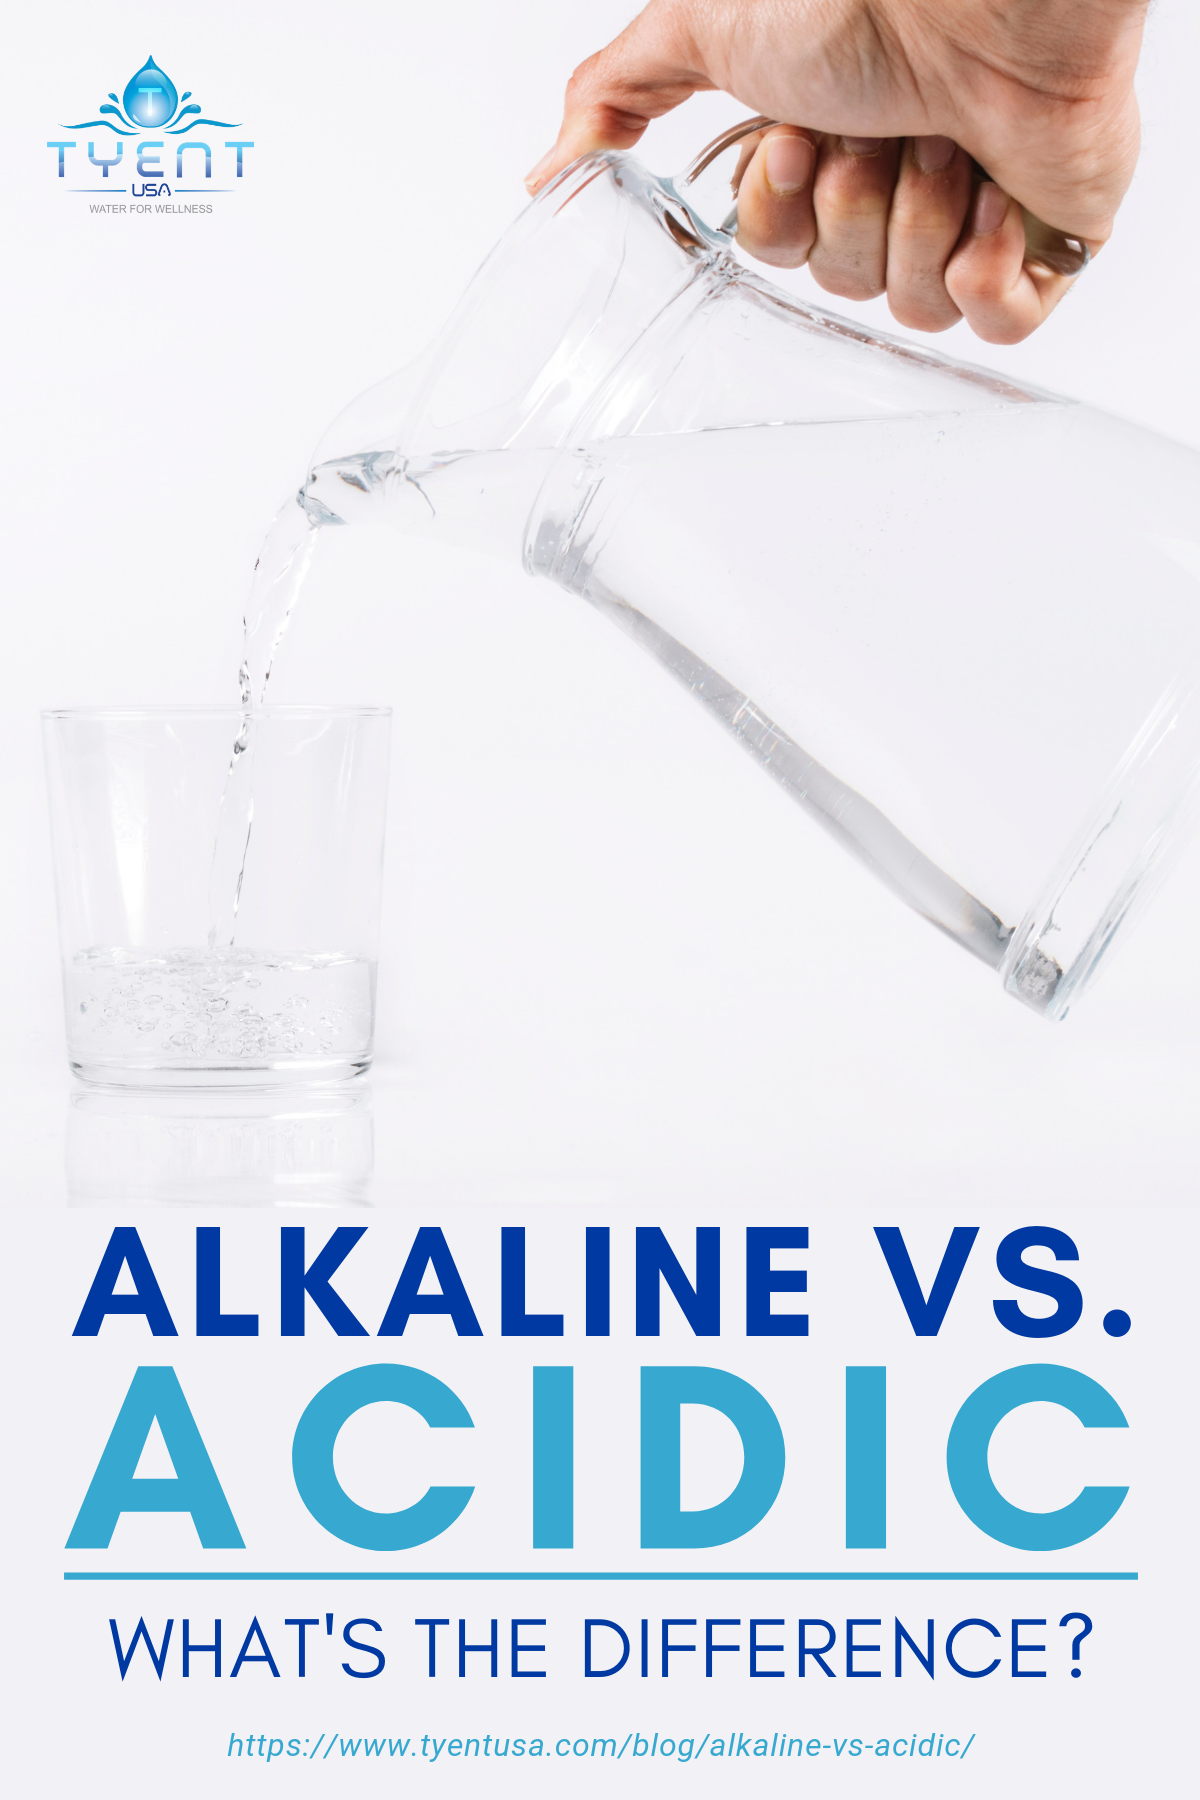 Alkaline vs Acidic: What's The Difference? https://www.tyentusa.com/blog/alkaline-vs-acidic/